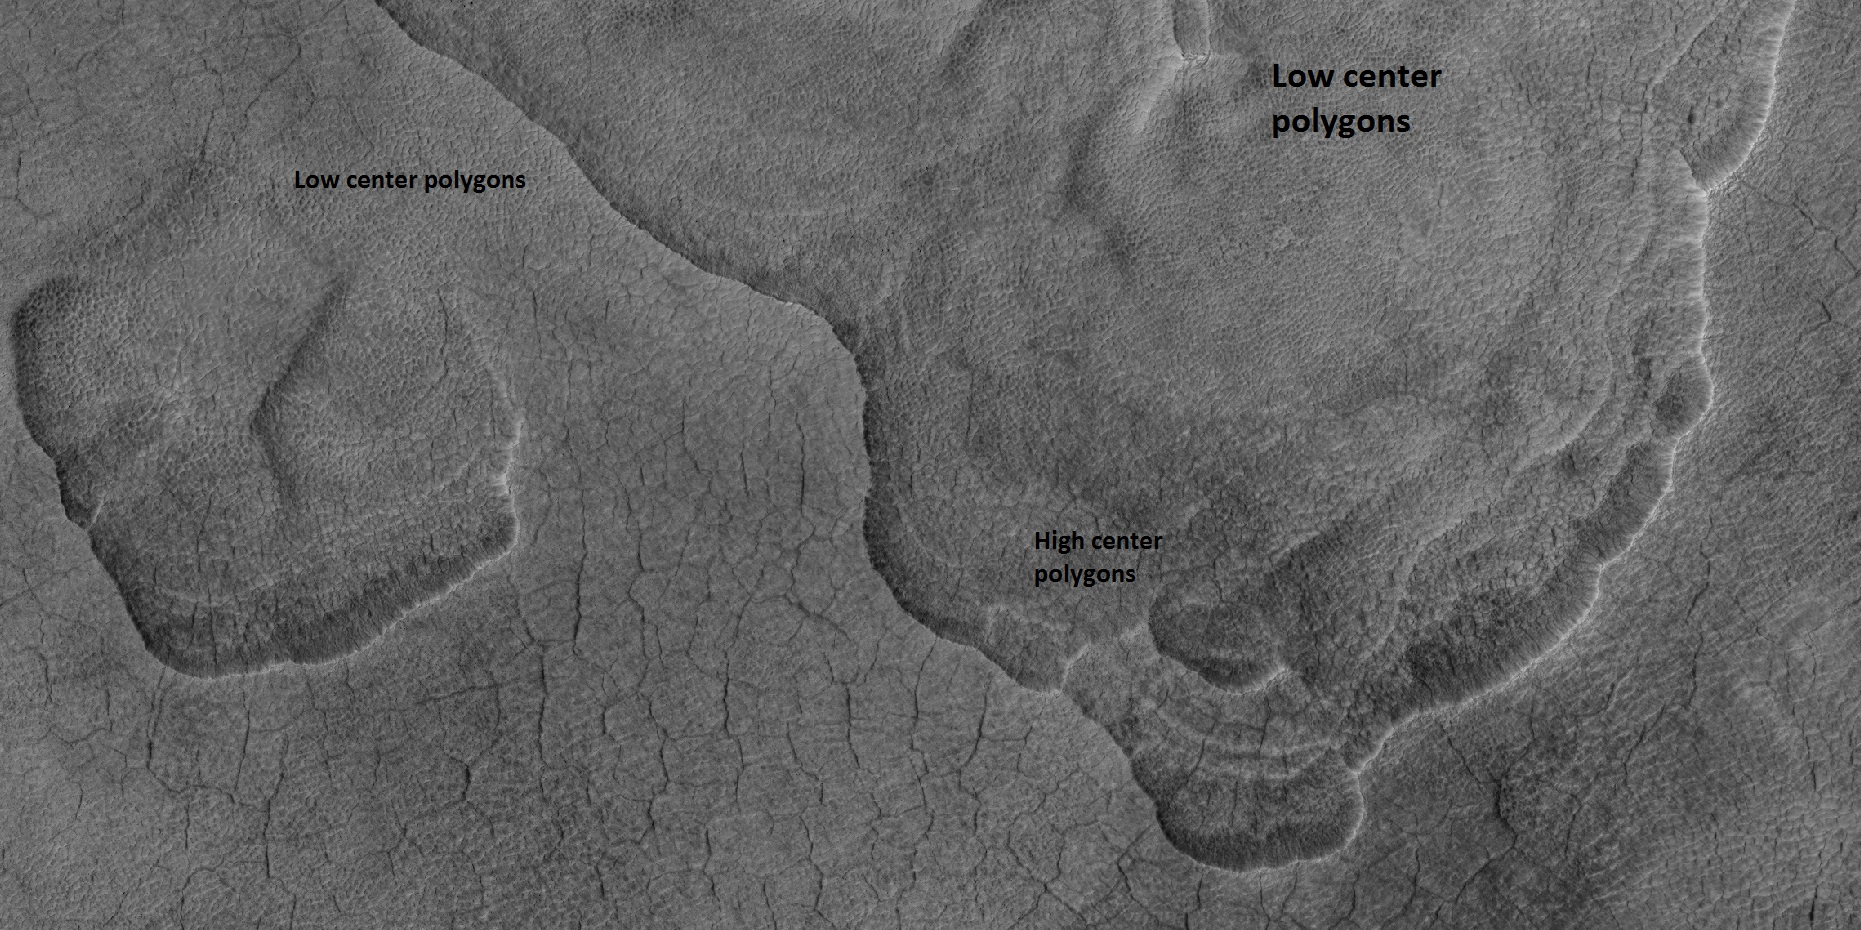 Scalloped terrain labeled with both low center polygons and high center polygons